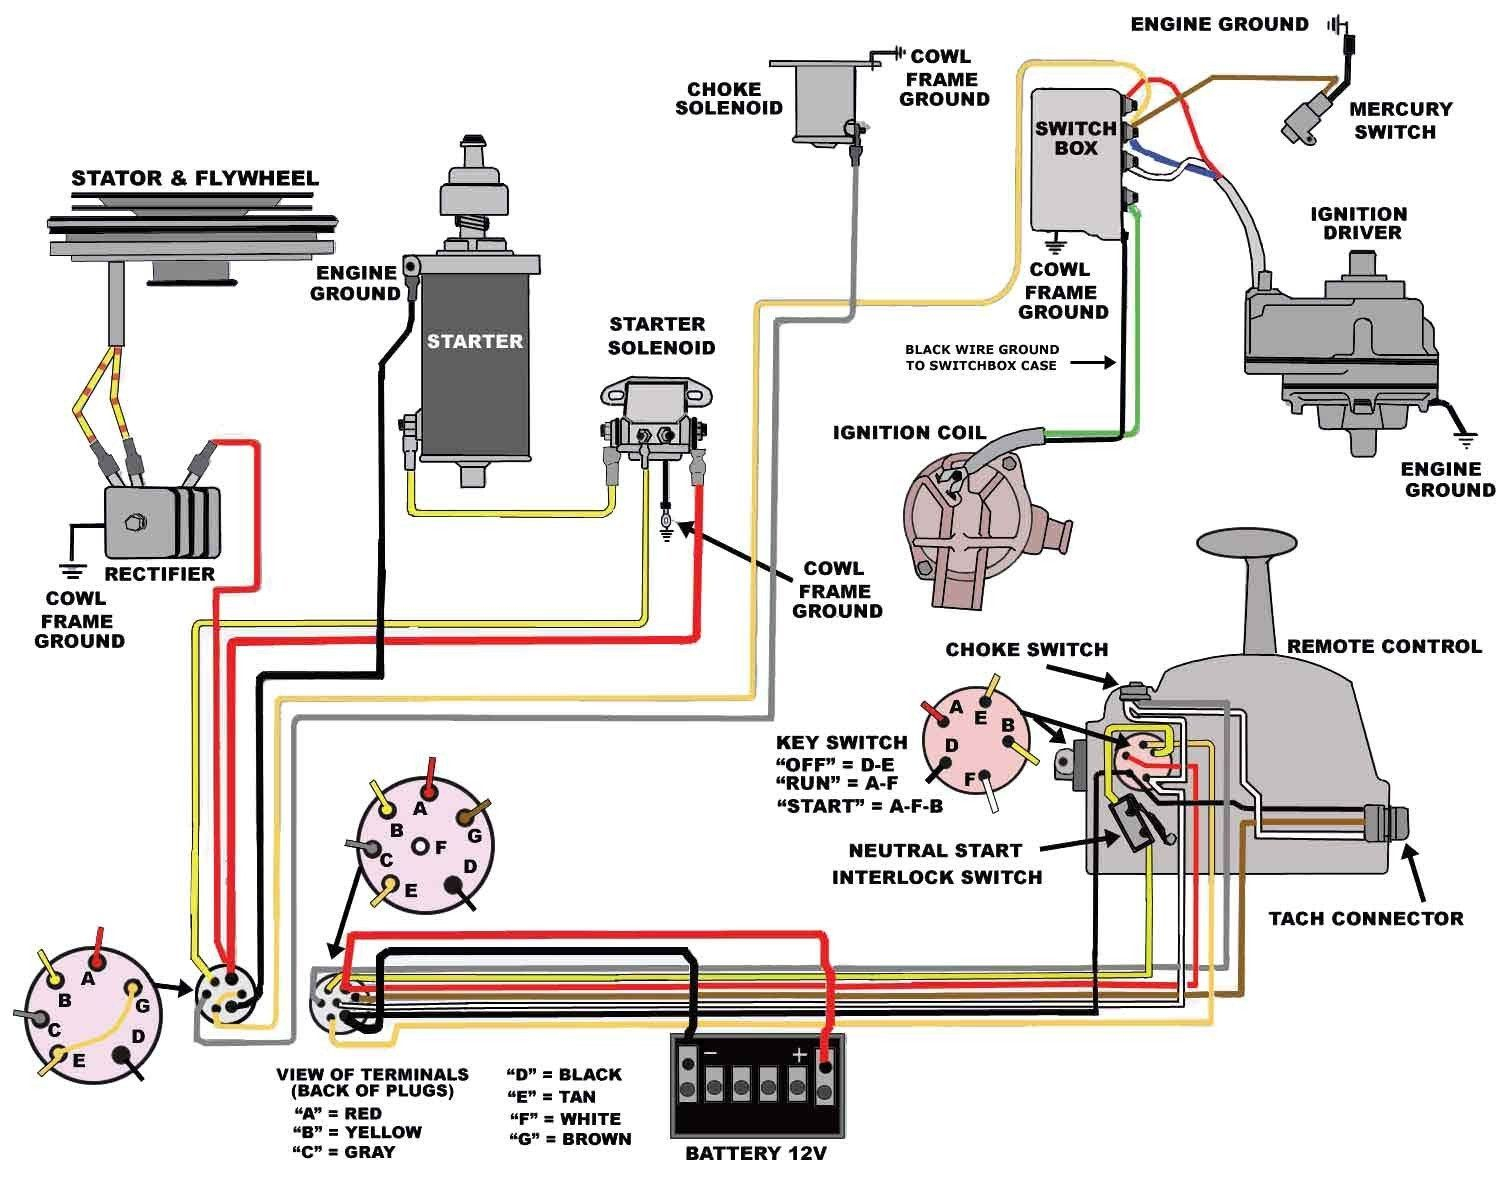 Mercruiser Ignition Switch Wiring Diagram - Motherwill For - Mercruiser Ignition Wiring Diagram